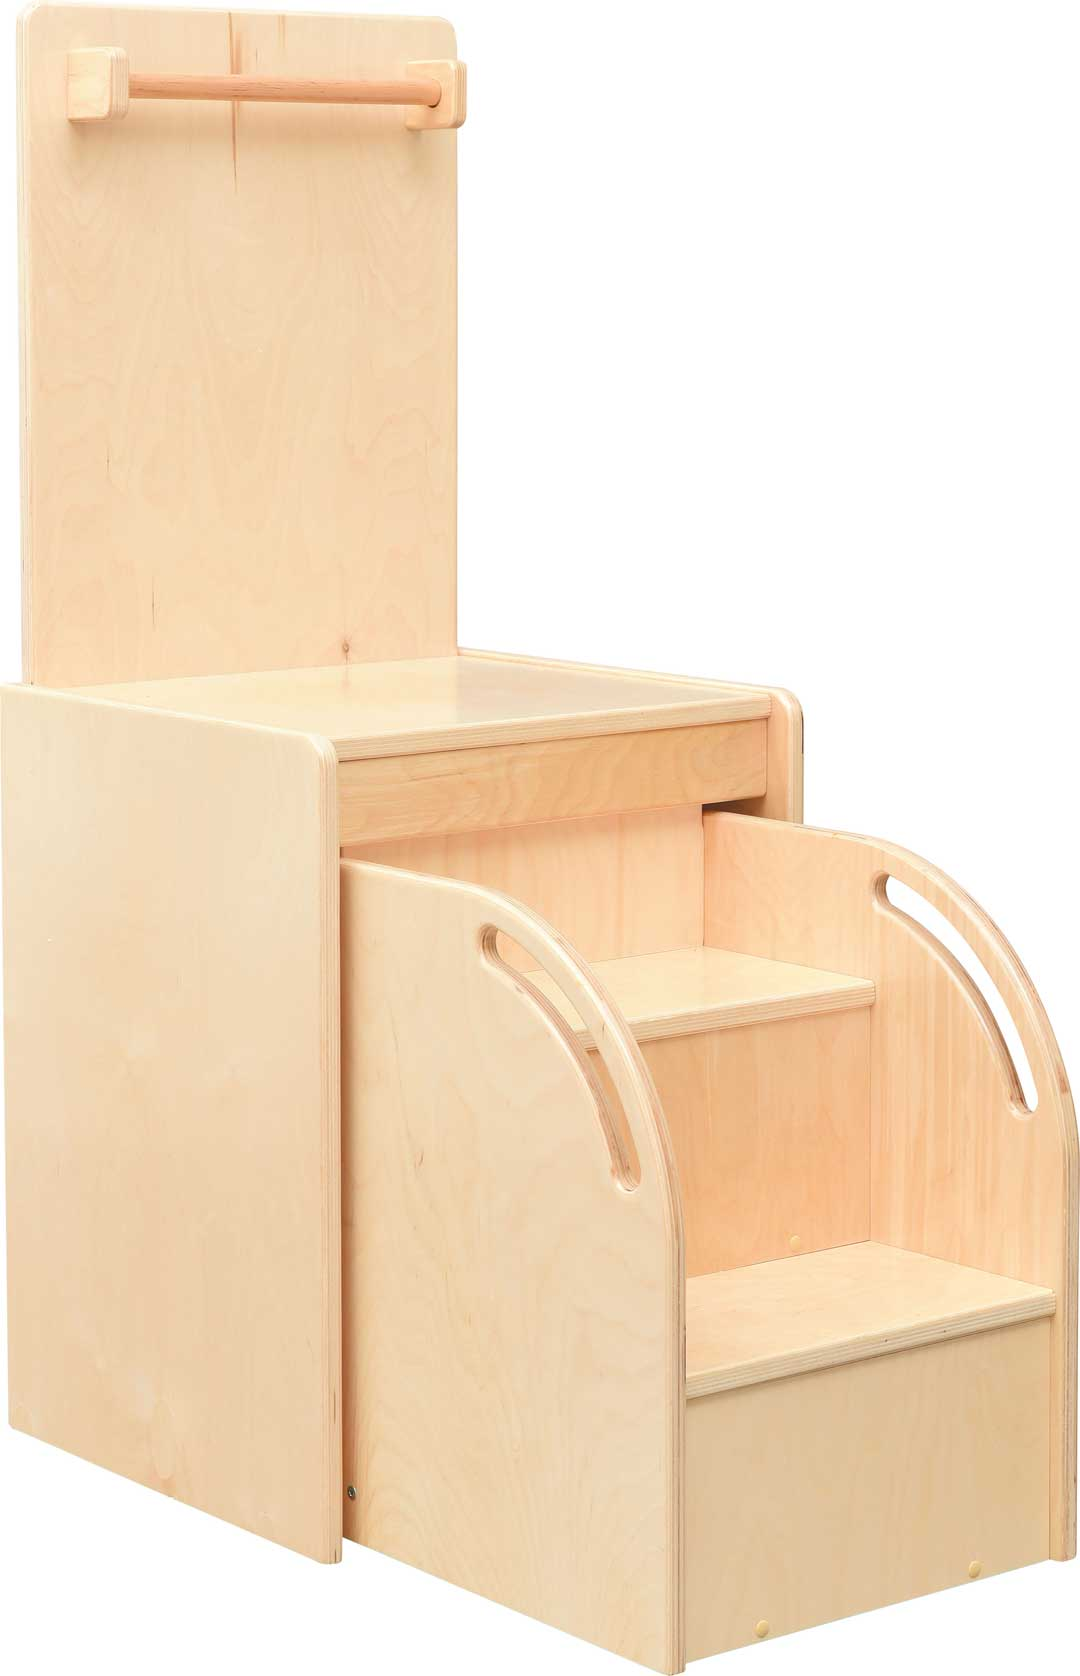 Dressing Podium with Pull-out Stairs